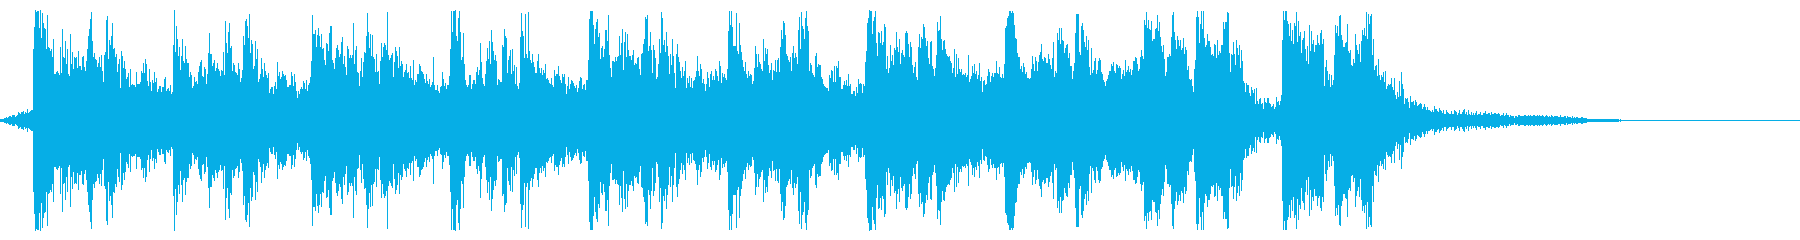 Hollywood eye catch's reproduced waveform